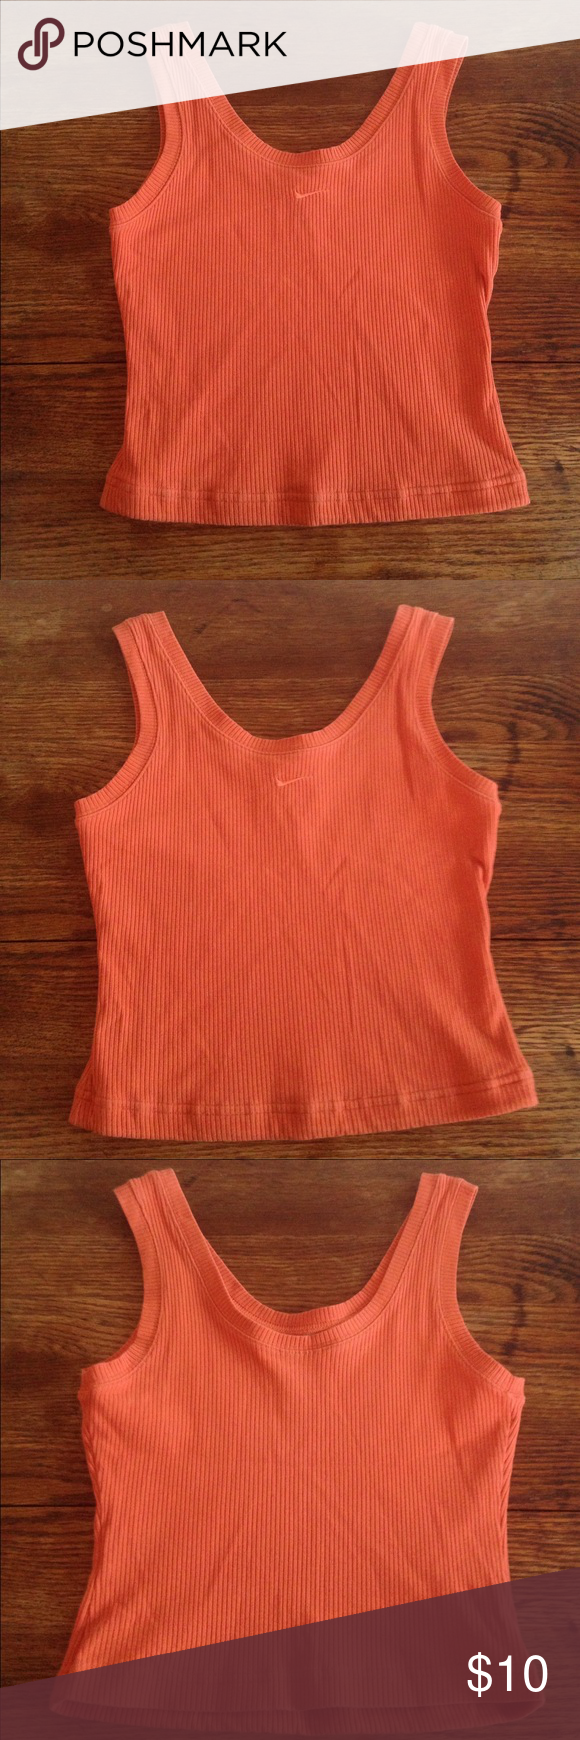 Nike orange sports tank size xs (0-2) Nike orange sports tank size xs (0-2) , cotton, nylon, spandex blend Nike Tops Tank Tops